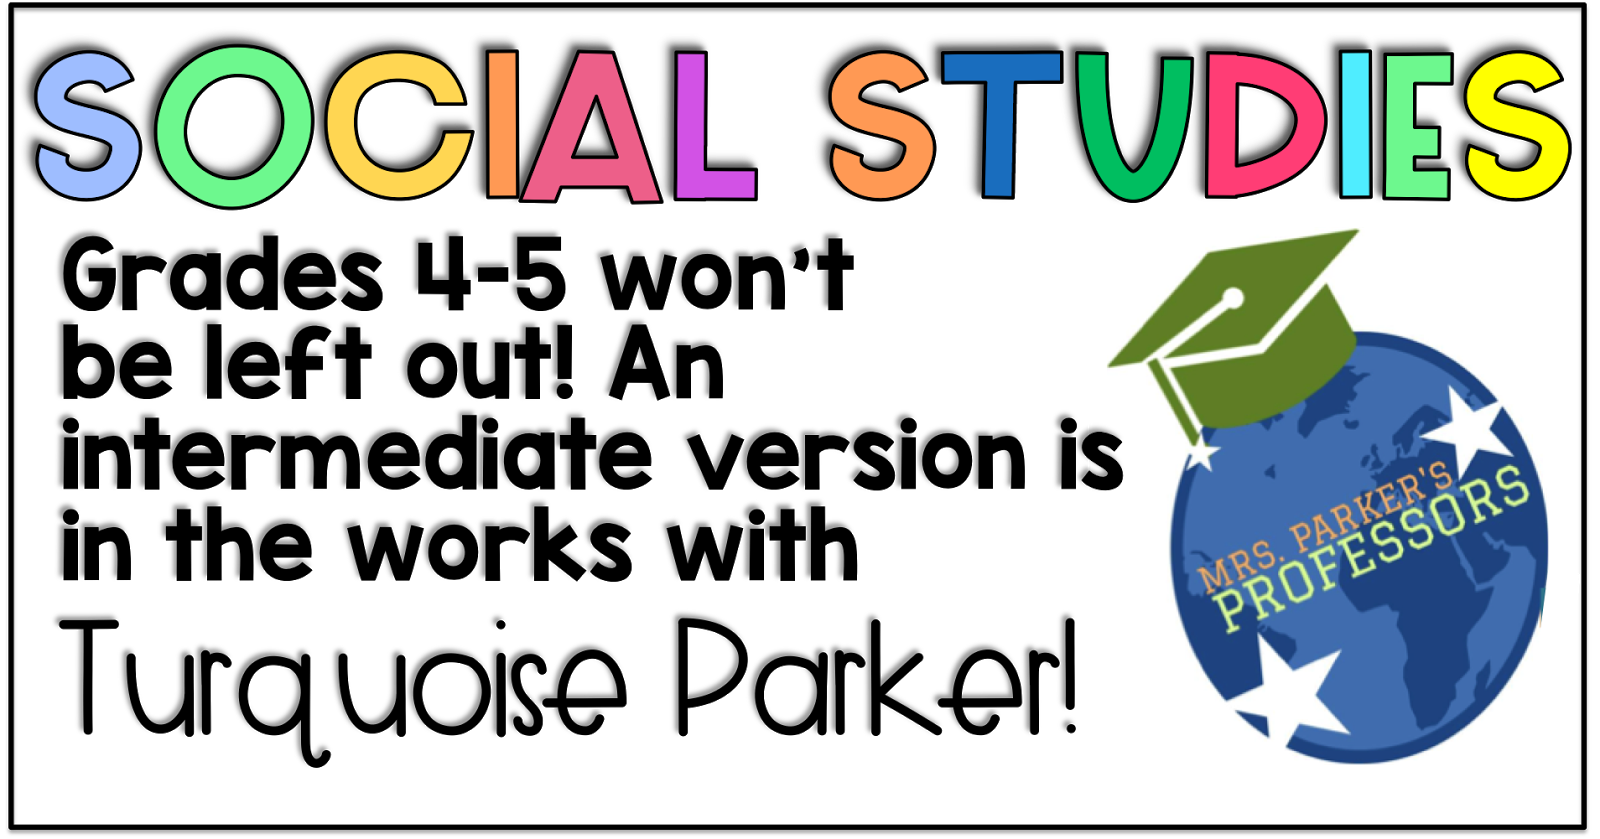 Primary Chalkboard: Social Studies Topics that Matter for